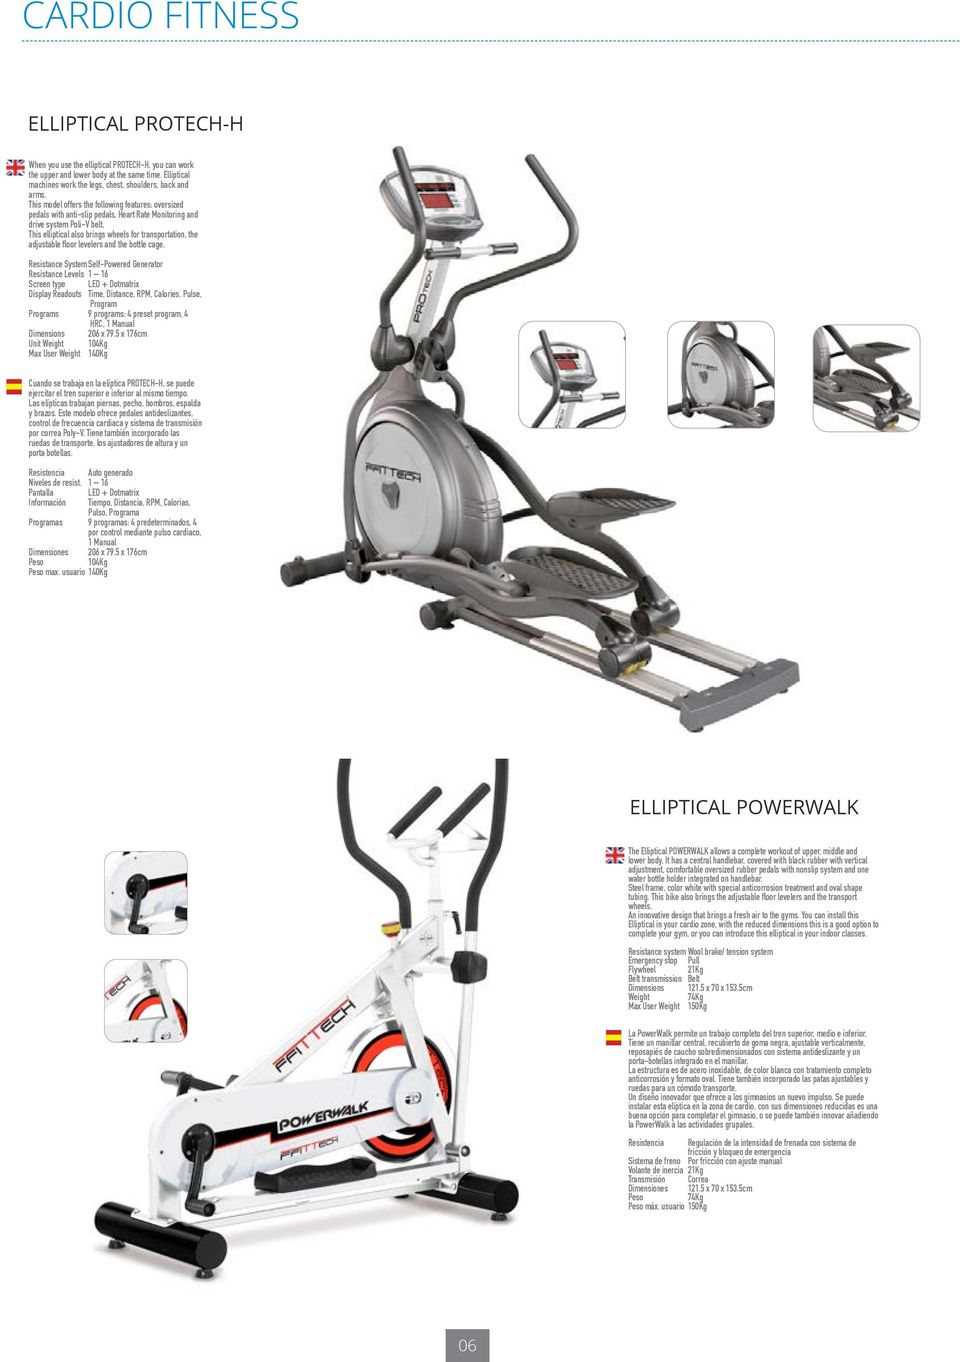 This elliptical also brings wheels for transportation, the adjustable floor levelers and the bottle cage.